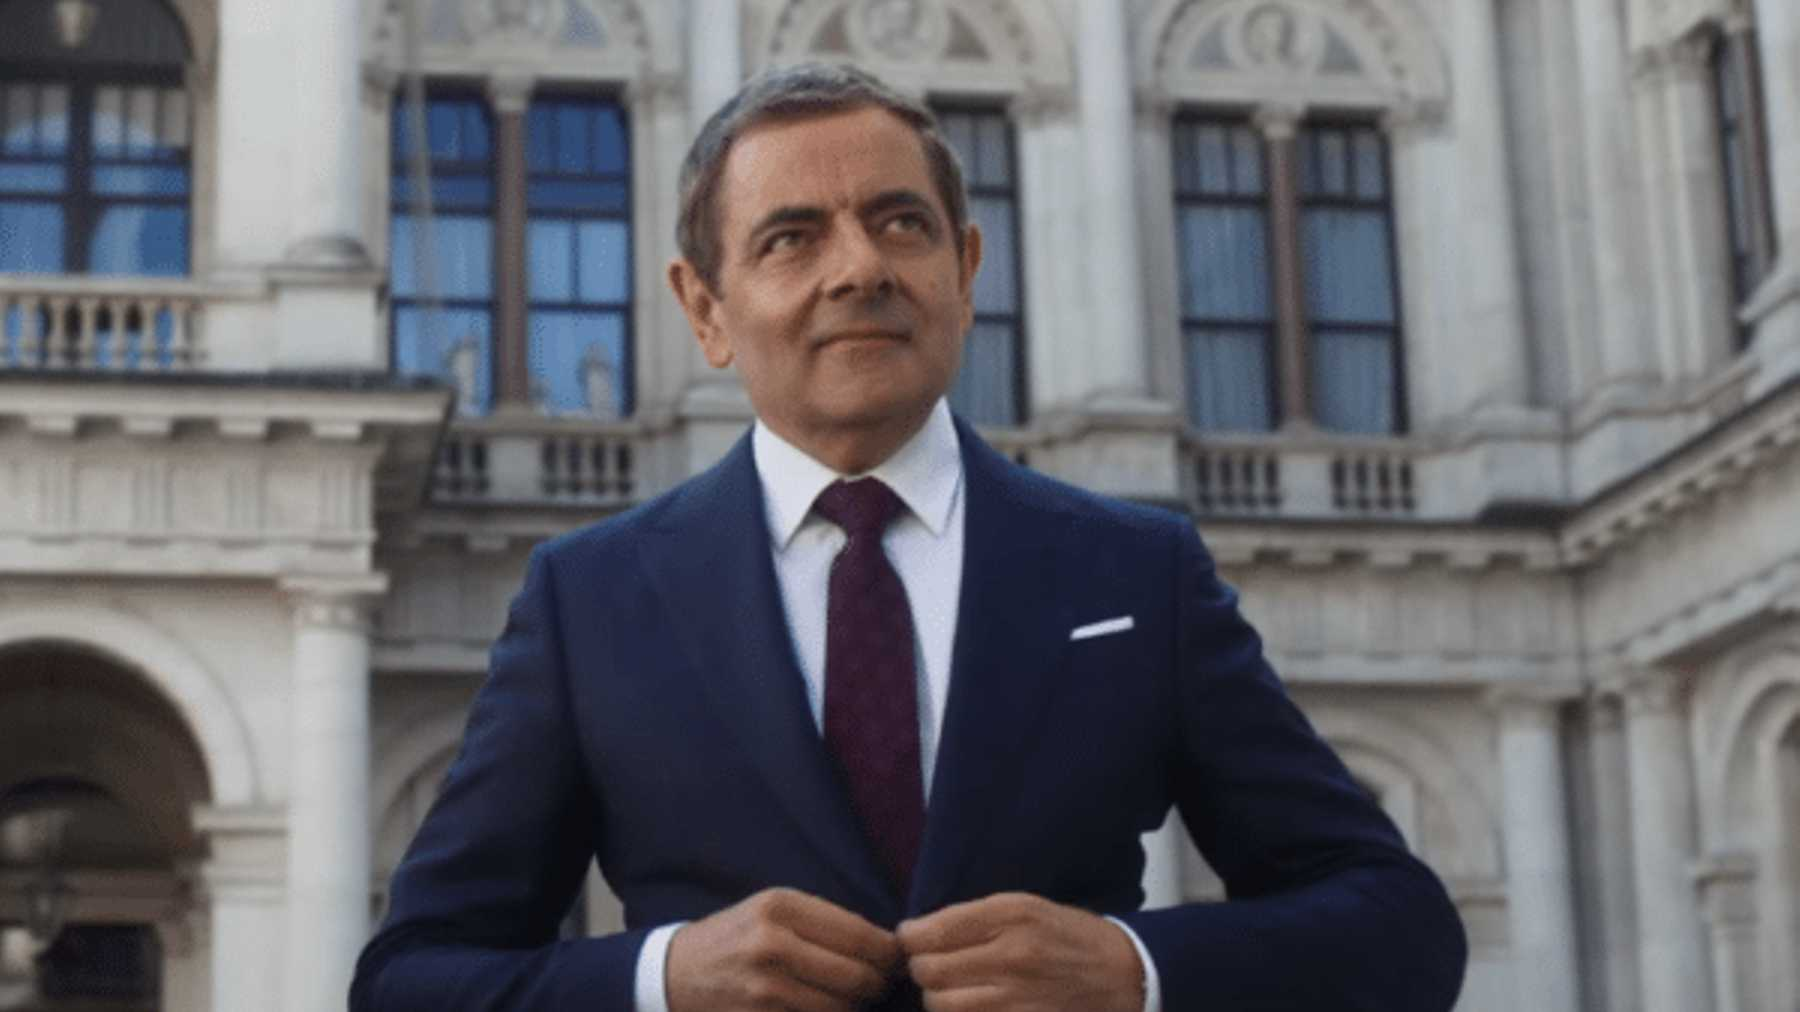 Johnny English Strikes Again In The First Trailer Movies Empire